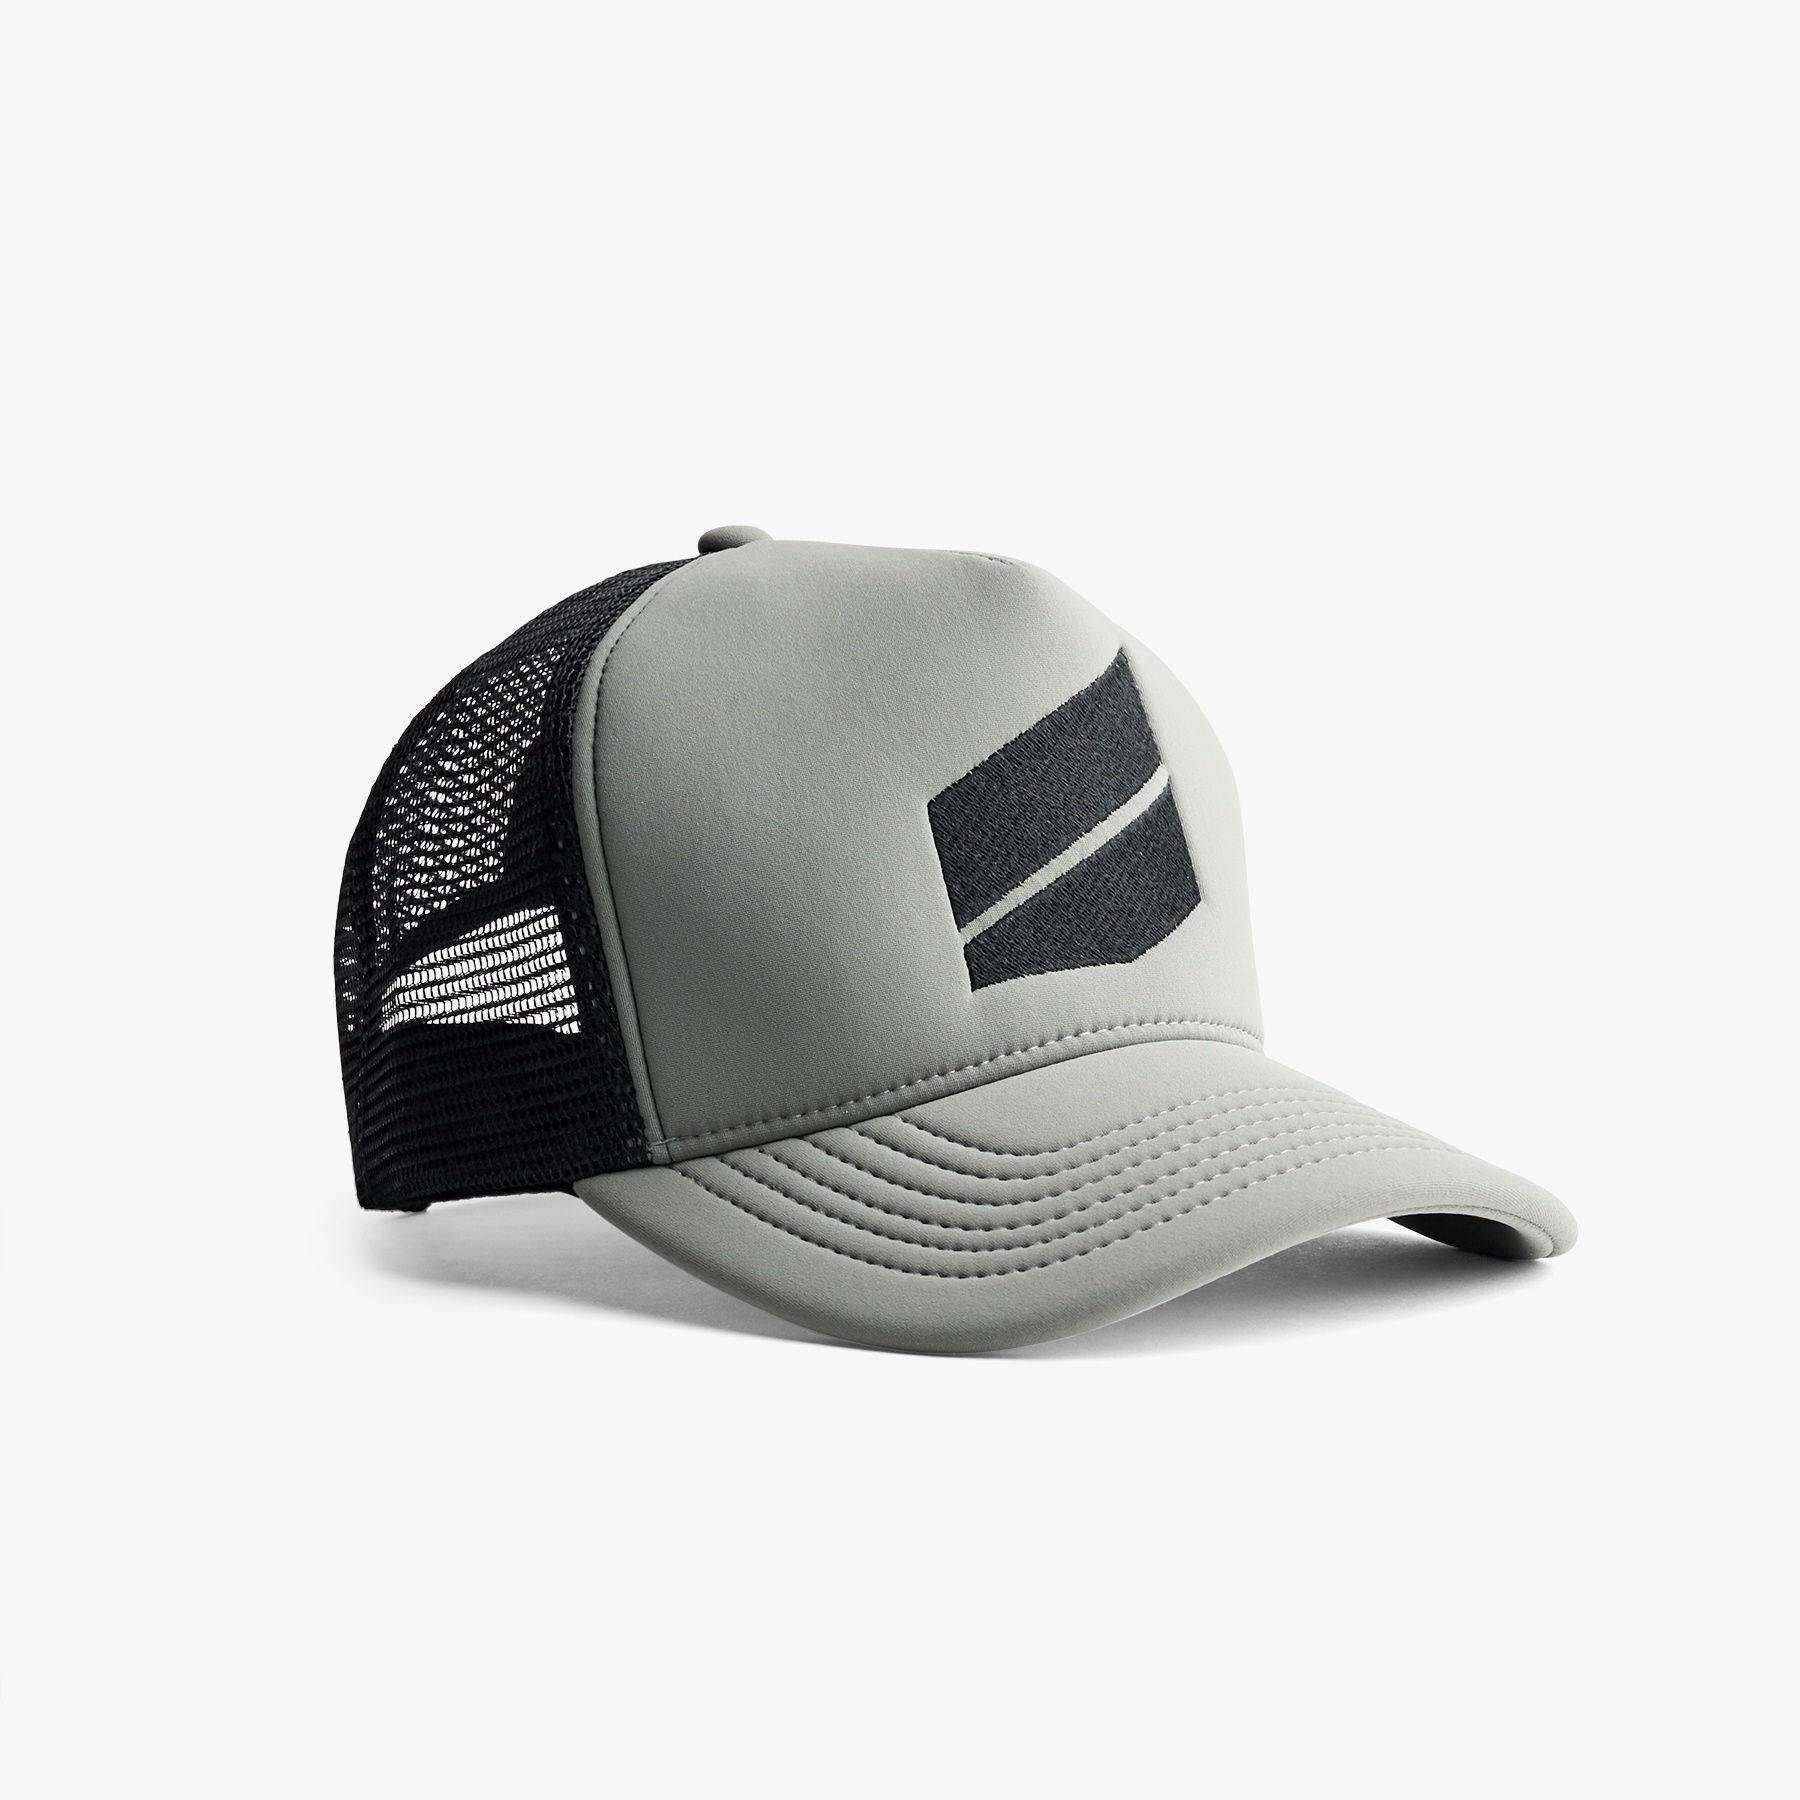 6c56a188 James Perse Scuba Graphic Trucker Hat - Online Exclusive in Black ...